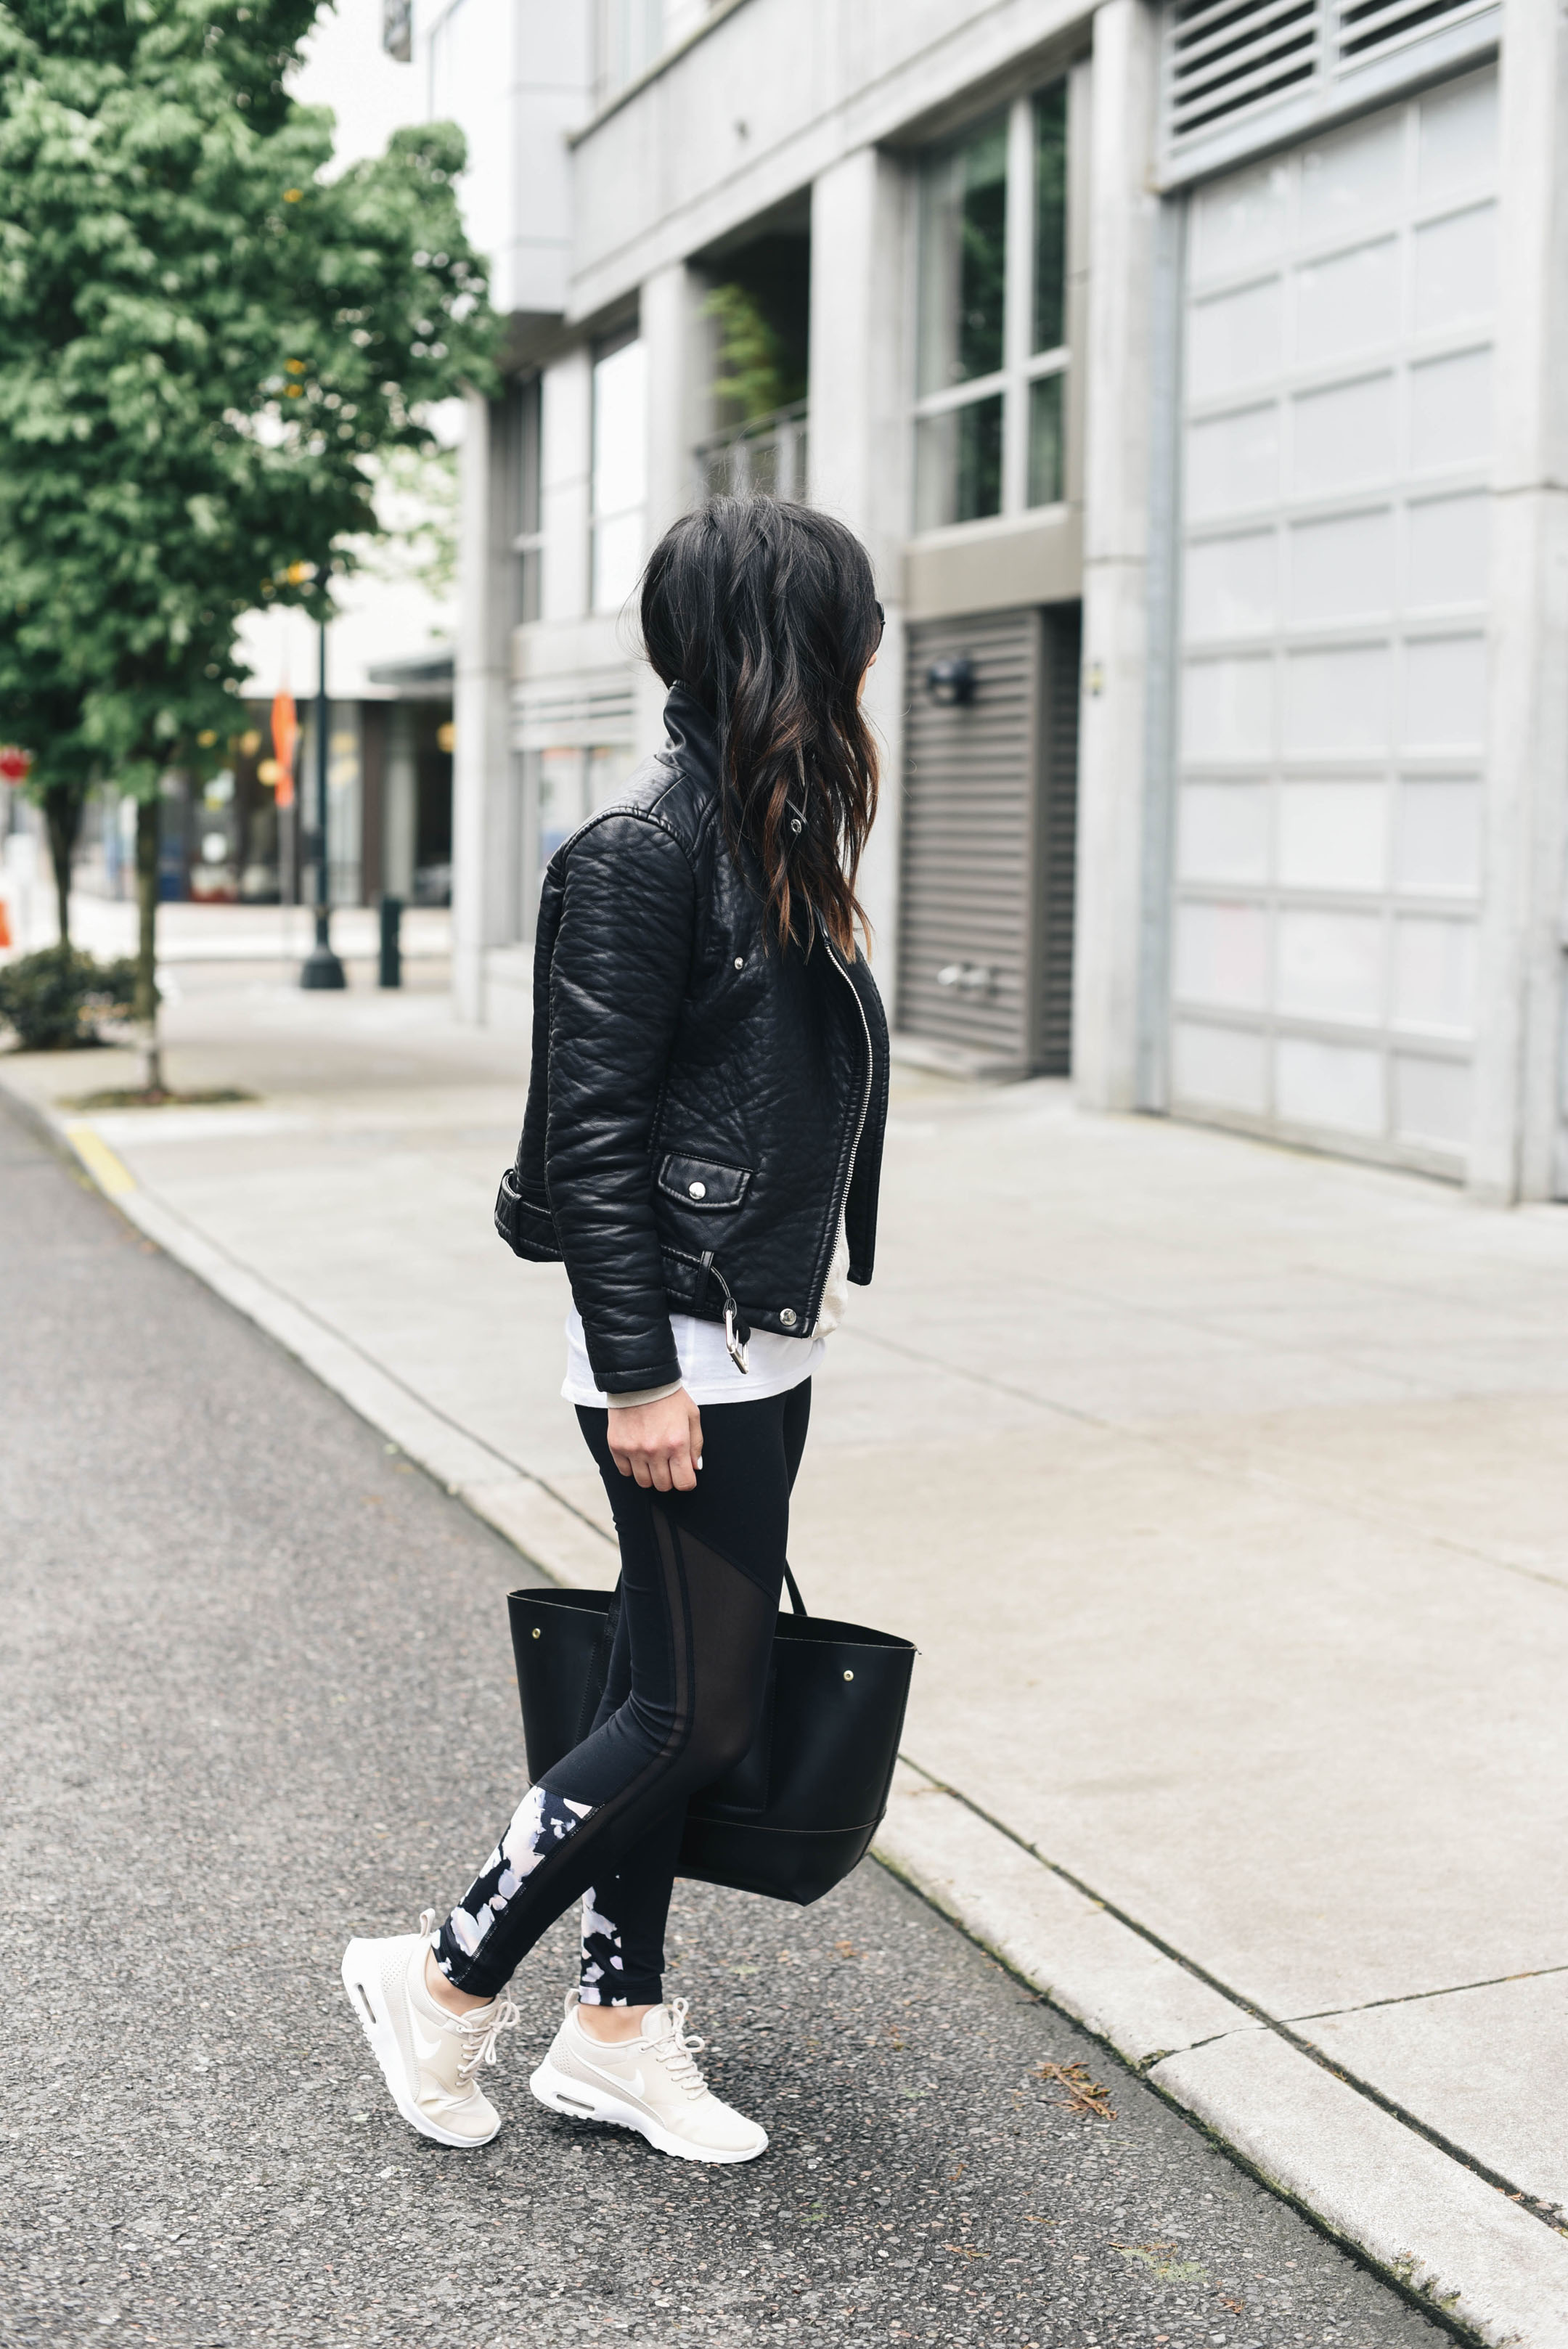 Leather jacket with athleisure